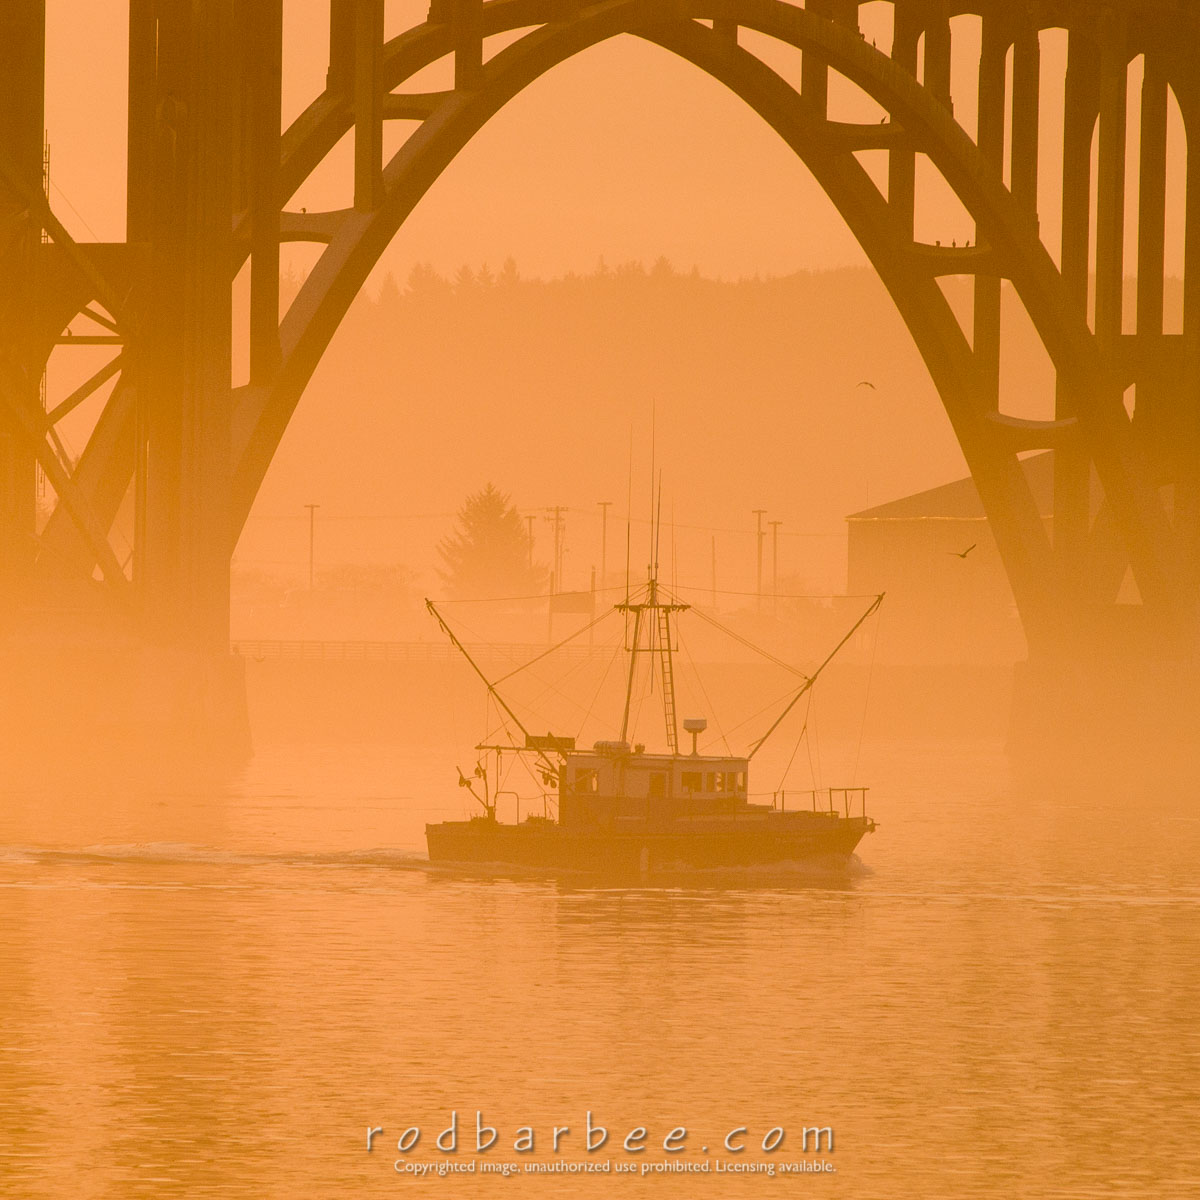 Barbee_030903_1_8023 |  Fishing boat heading out on a foggy morning at sunrise under the Yaquina Bay Bridge